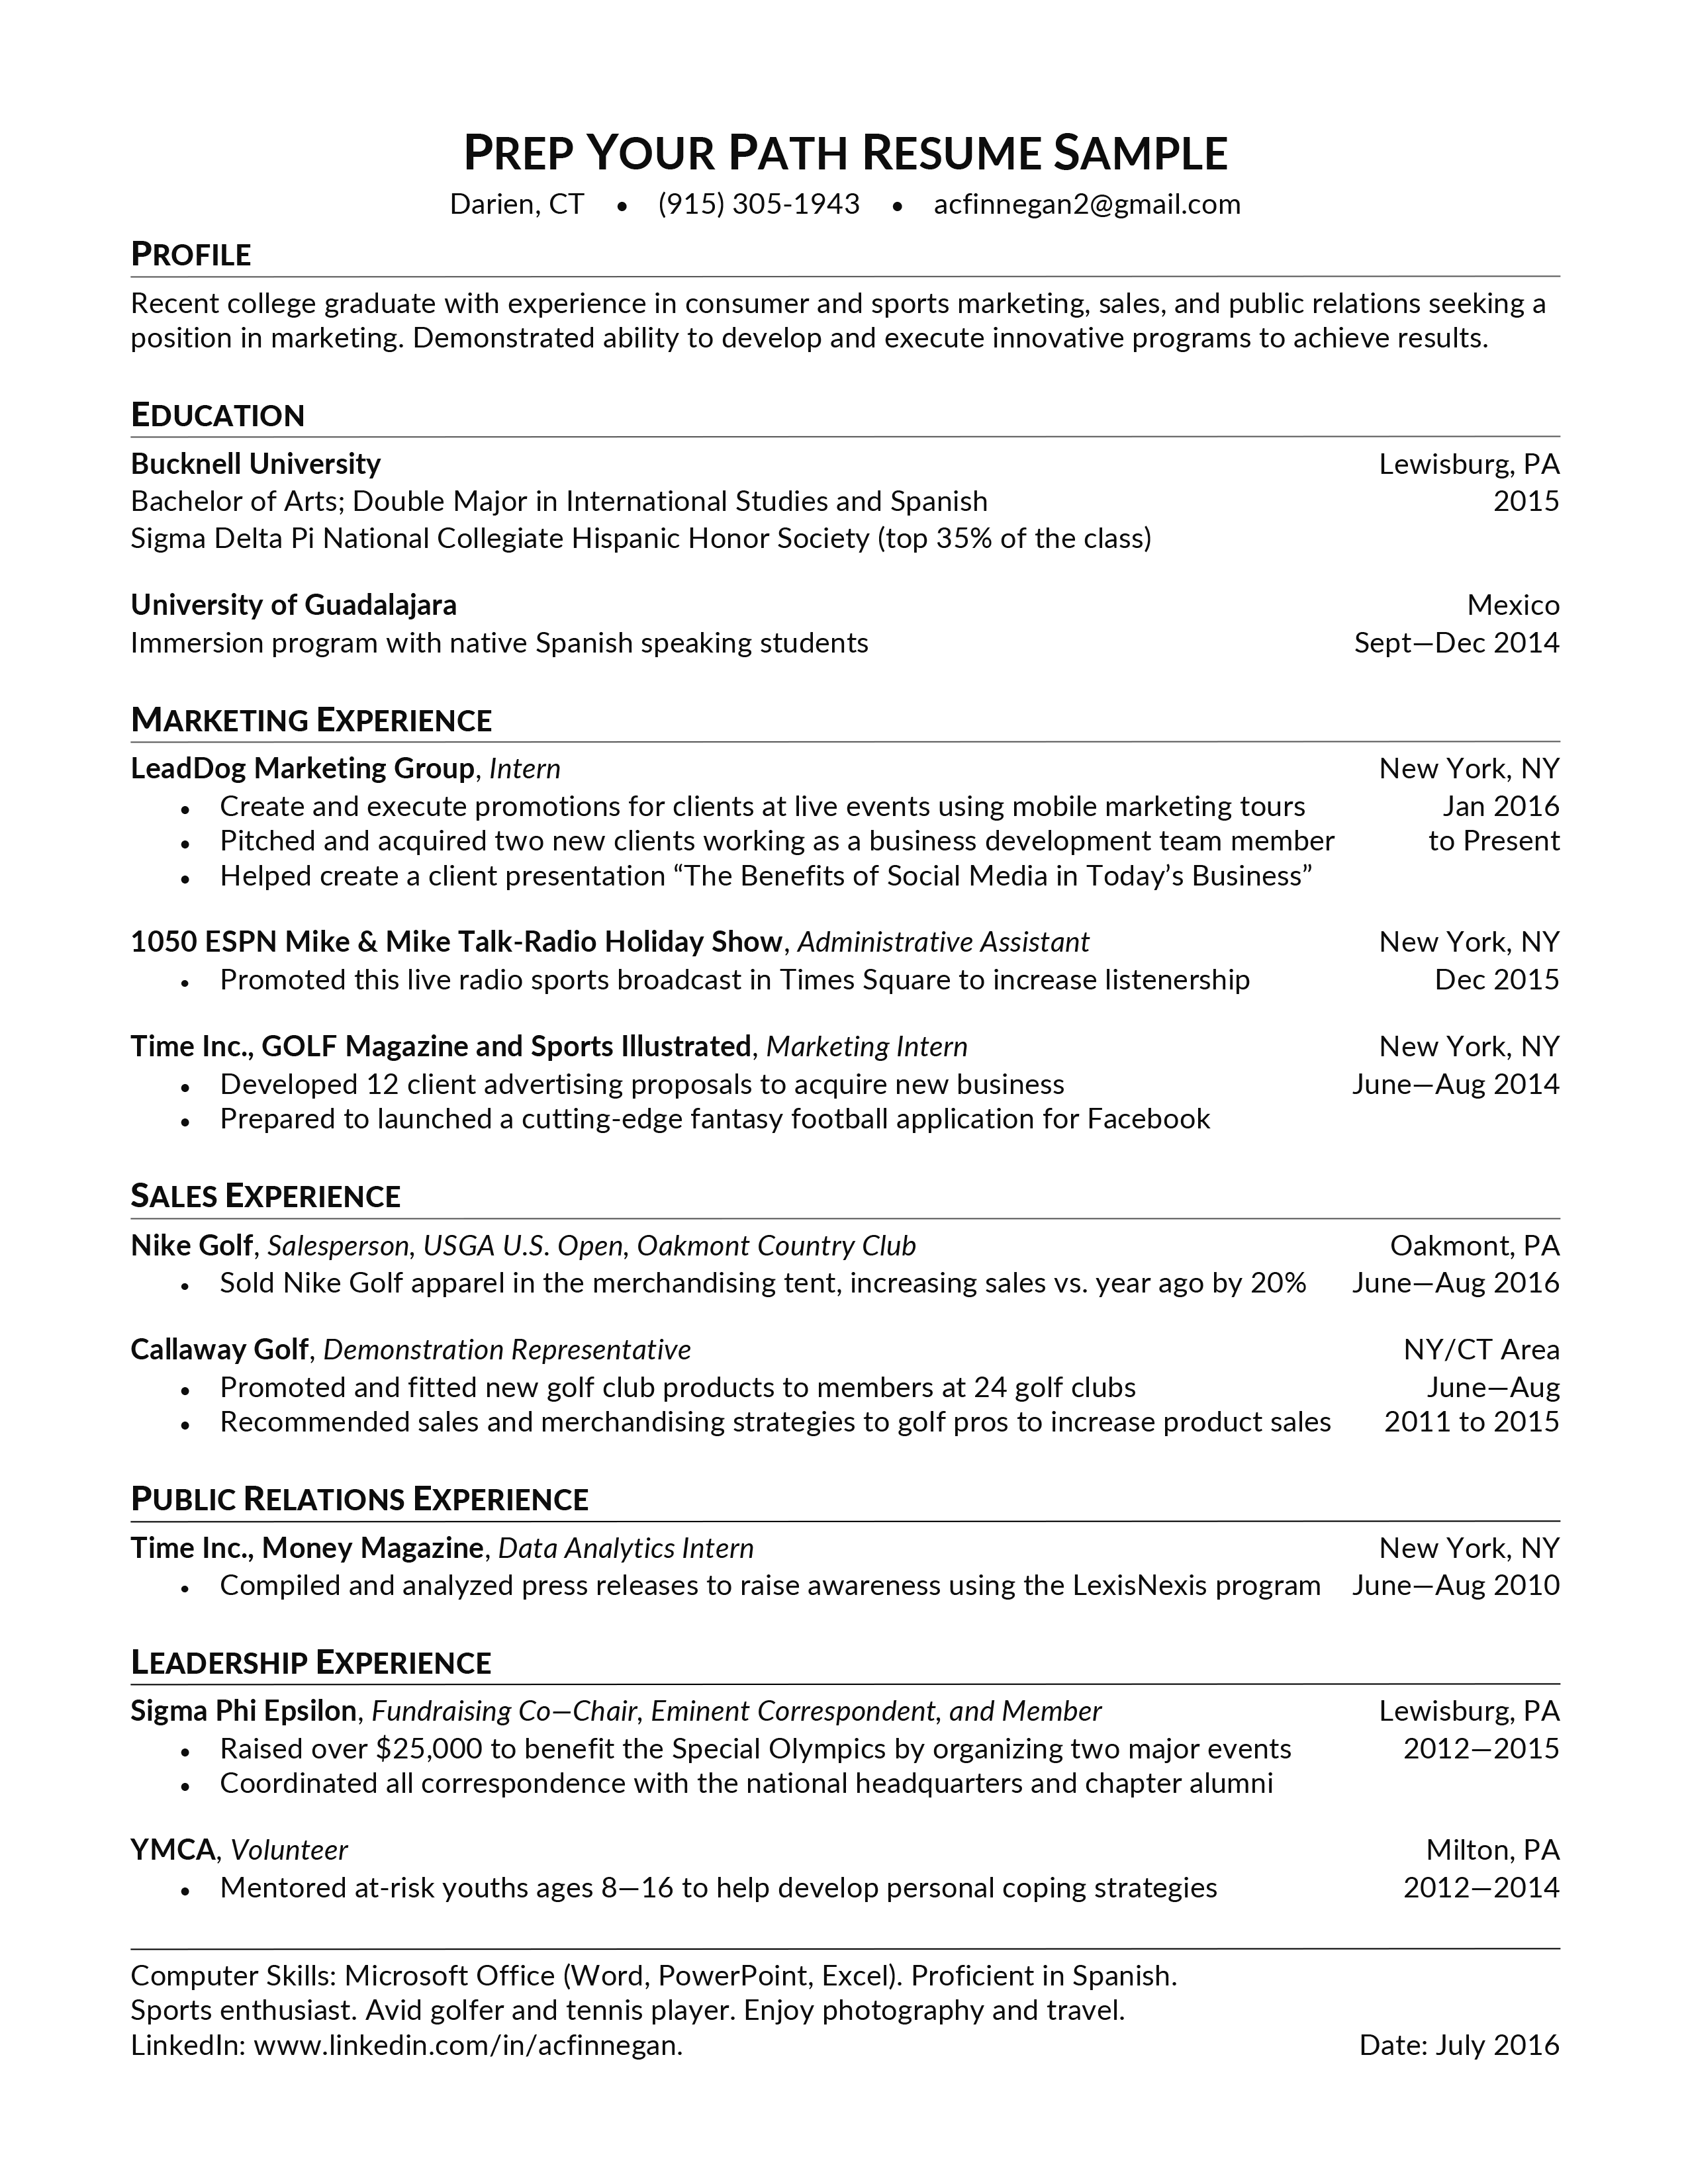 Resume Samples Students Prep Your Path Westchester Ny